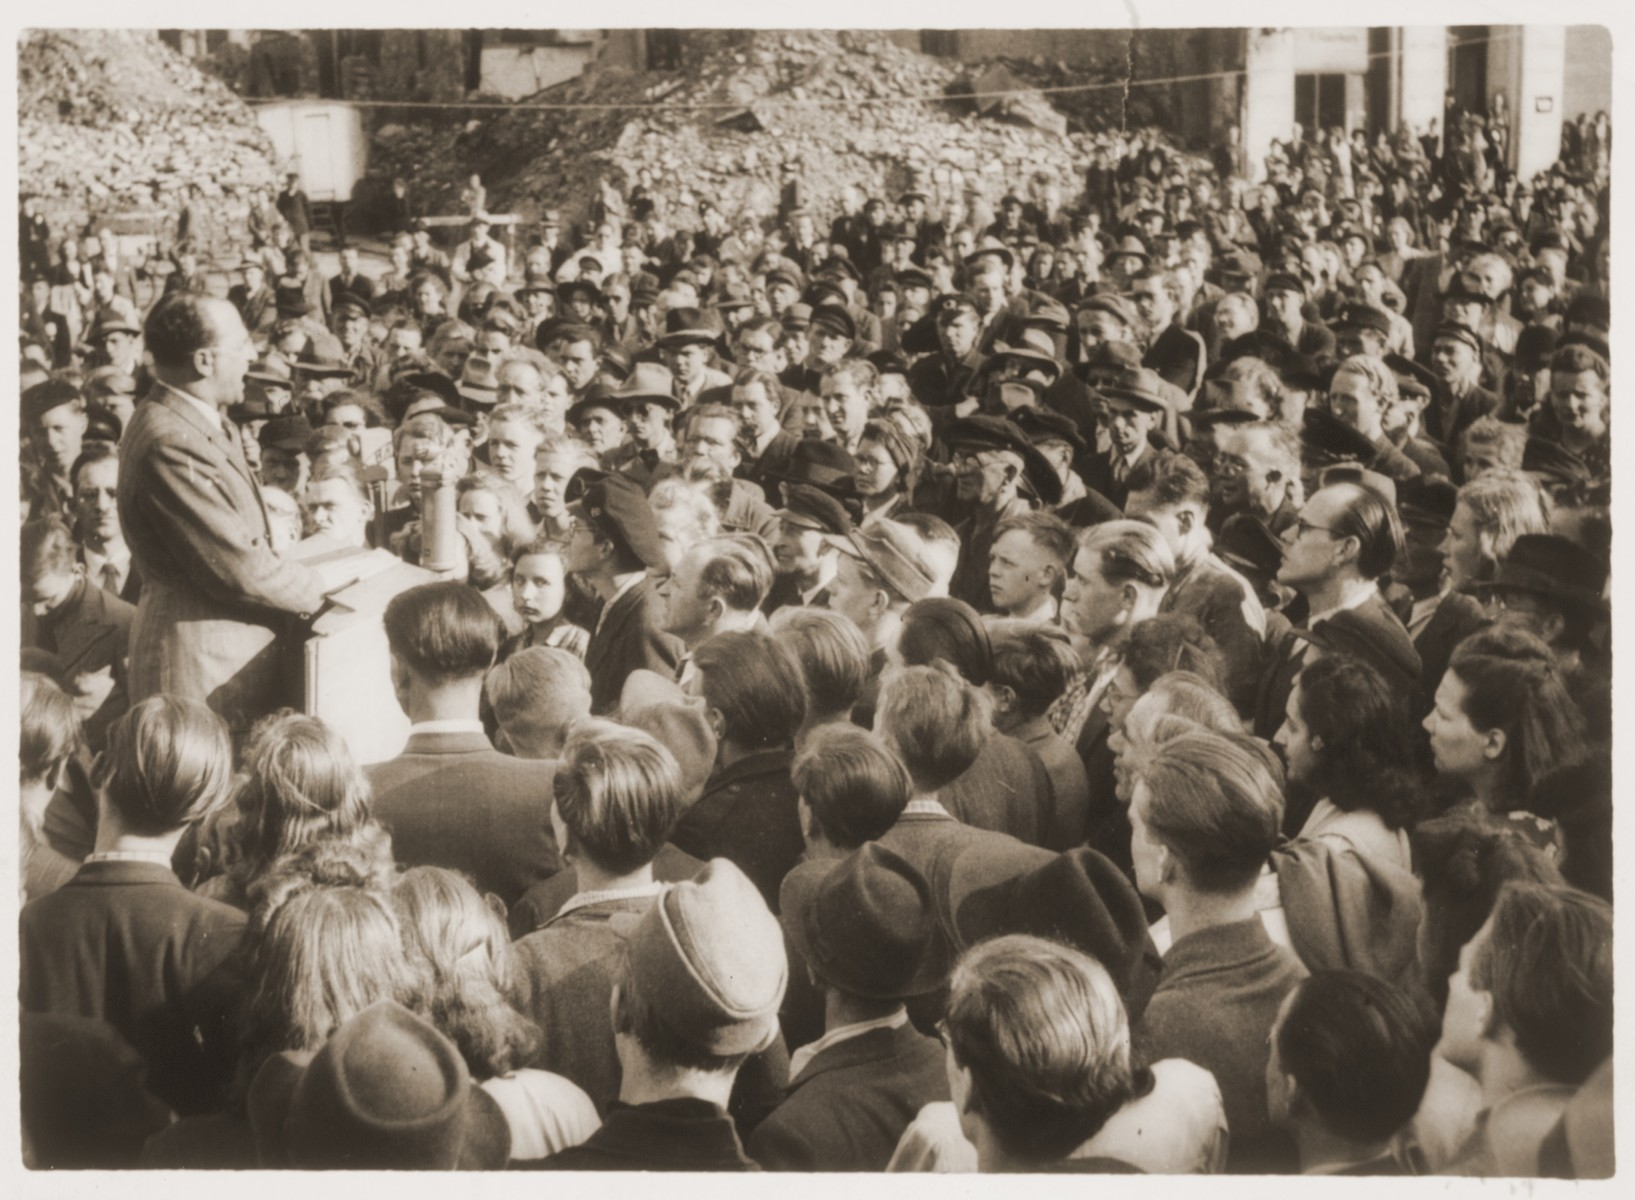 Norbert Wollheim, vice-chairman of the Central Committee for Liberated Jews in the British Zone of Germany, addresses a rally protesting the lenient sentencing of a Nazi war criminal.